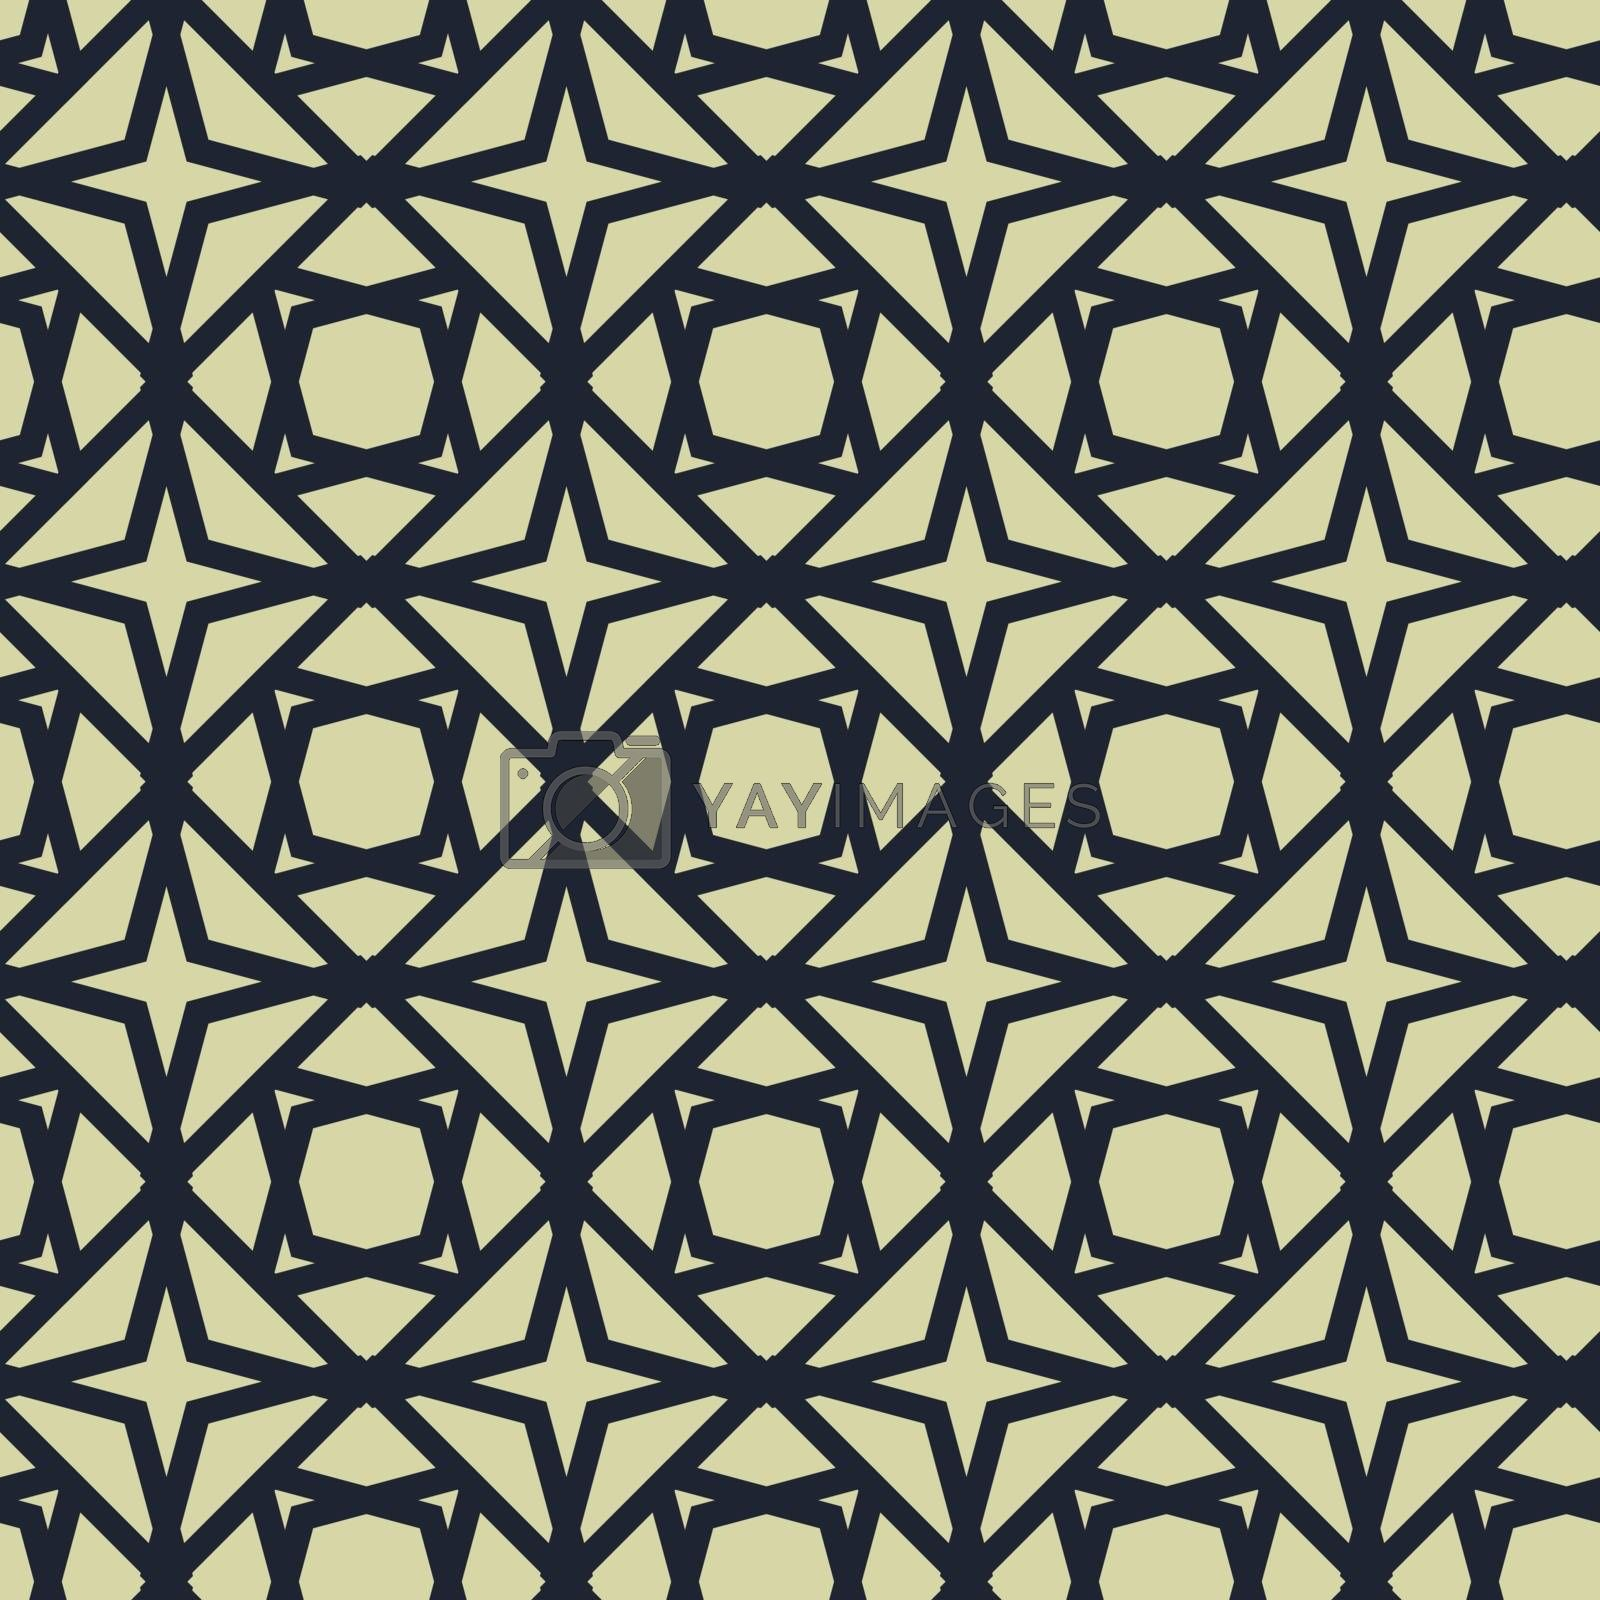 Simple outline geometric seamless pattern or wallpaper in retro style